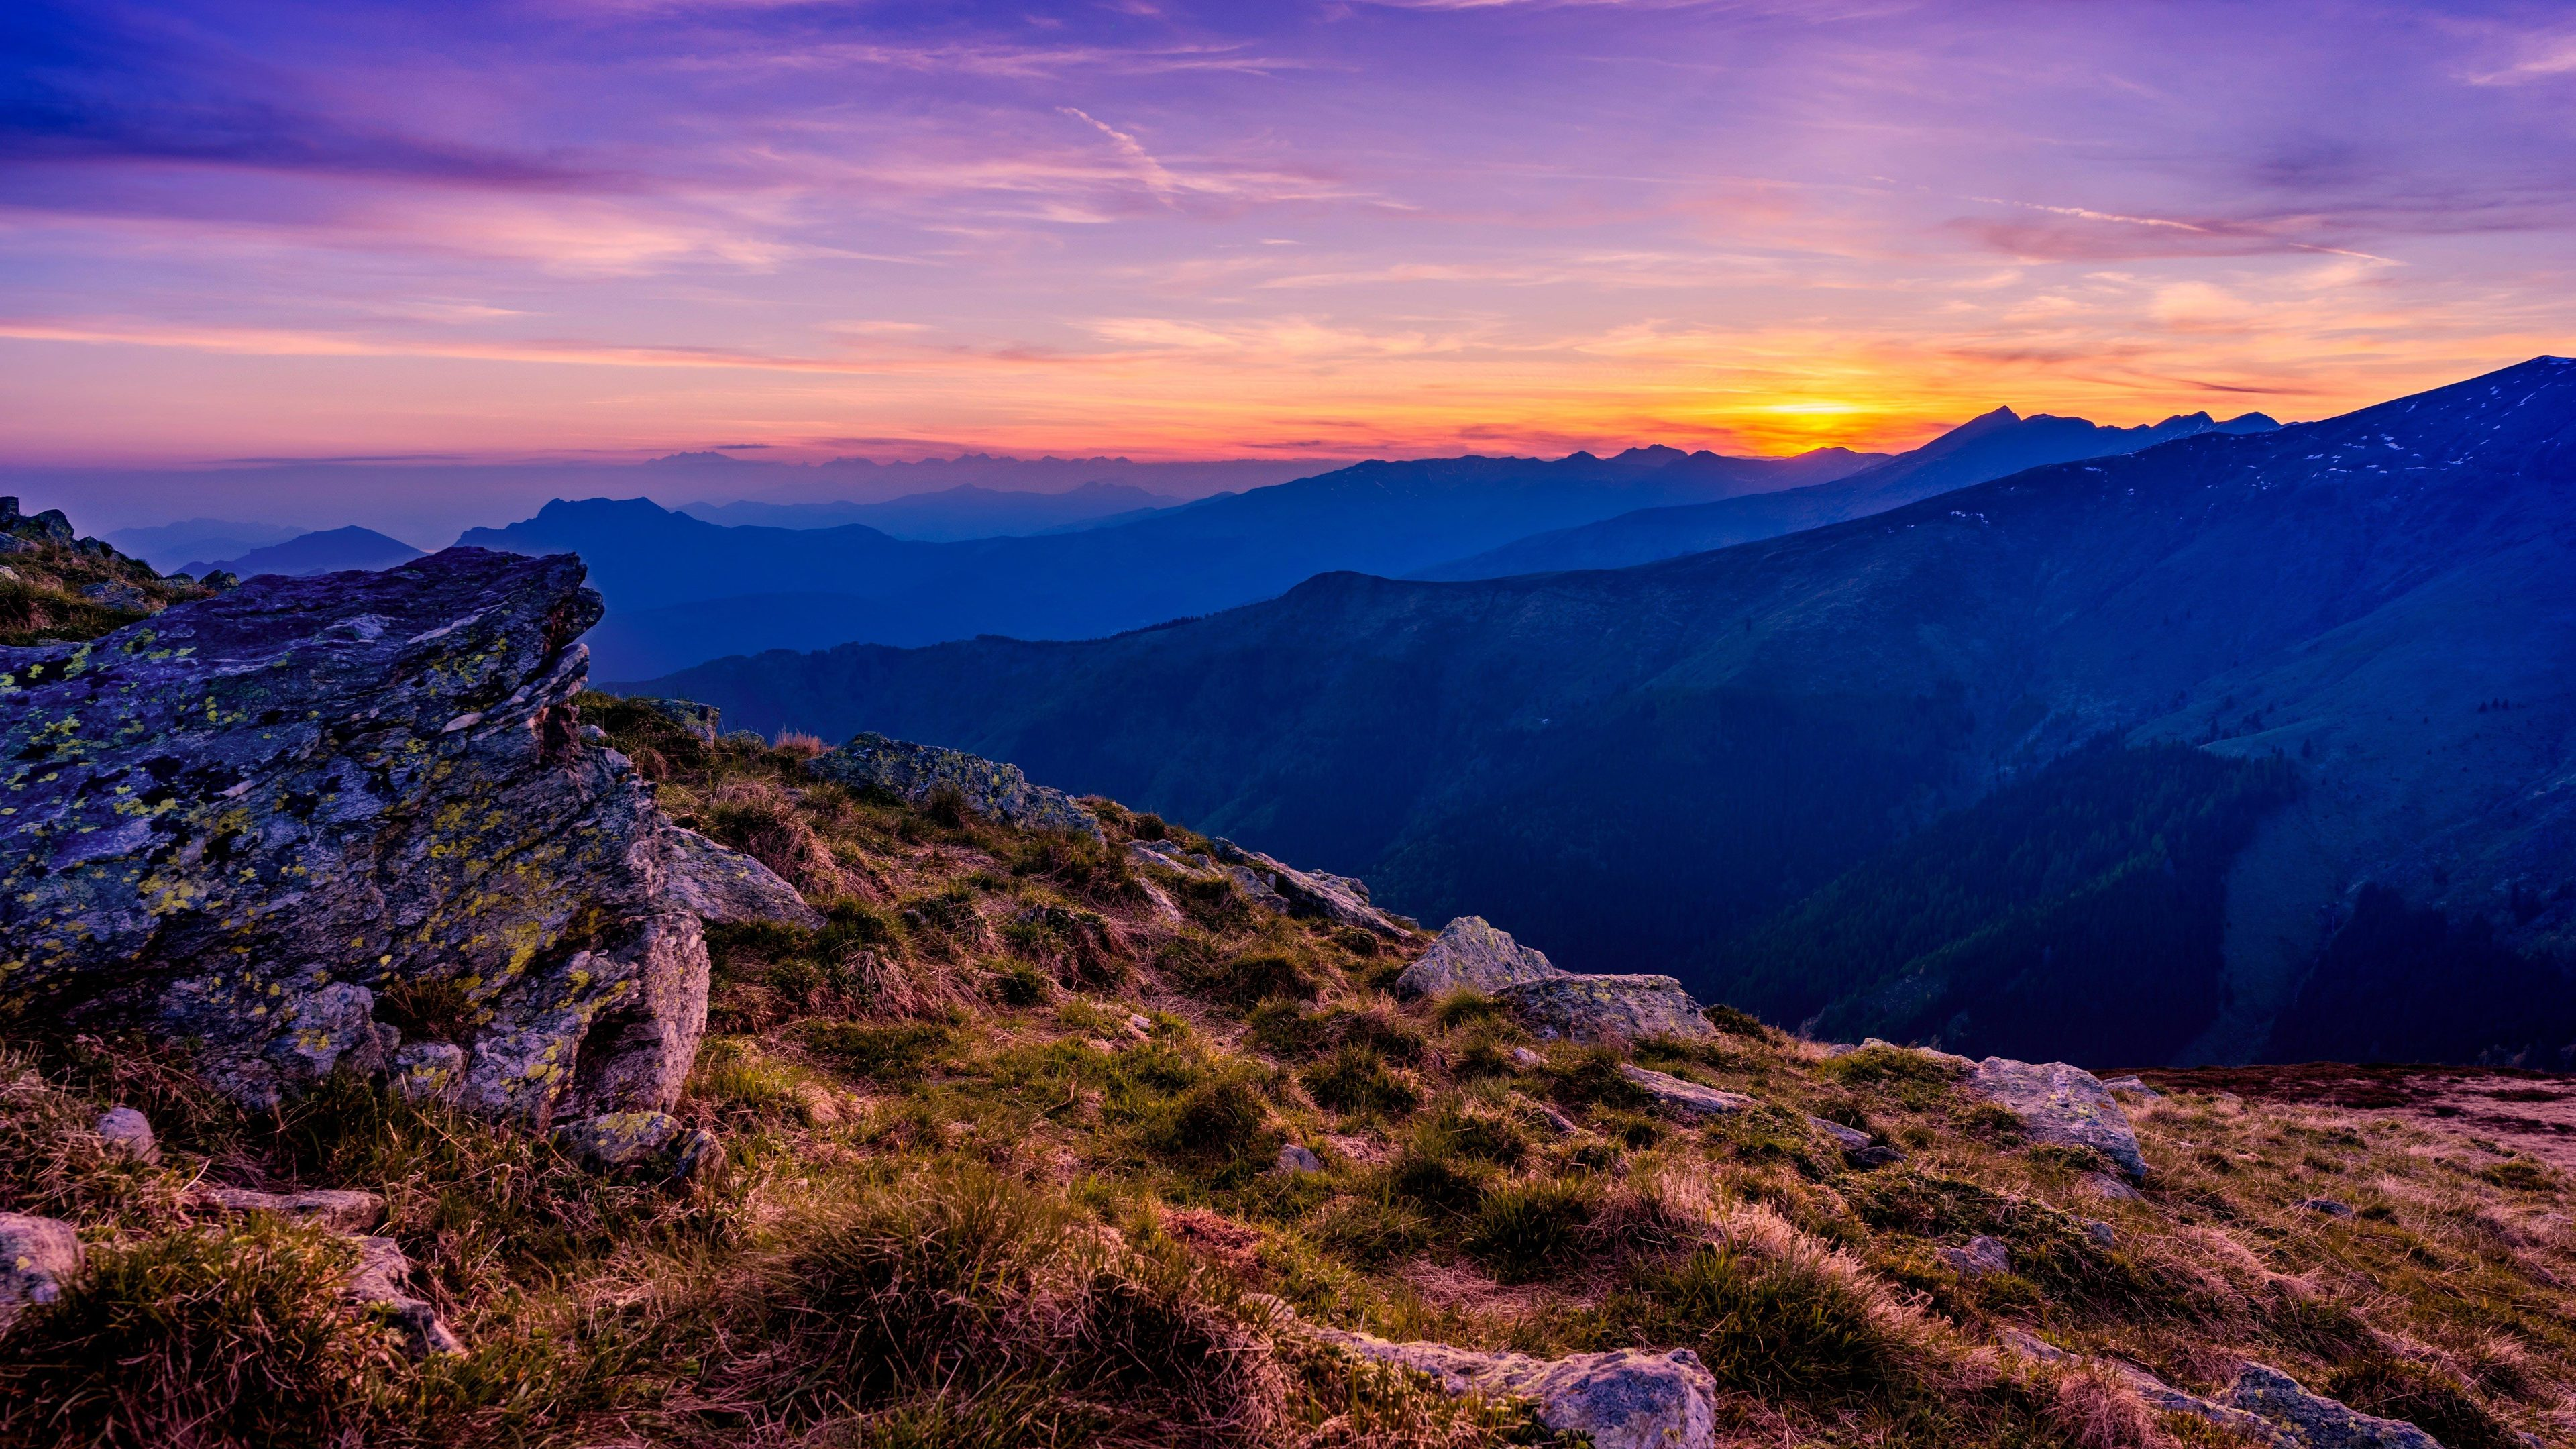 mountains clouds 5k 1540132772 - Mountains Clouds 5k - nature wallpapers, mountains wallpapers, hd-wallpapers, clouds wallpapers, 8k wallpapers, 5k wallpapers, 4k-wallpapers